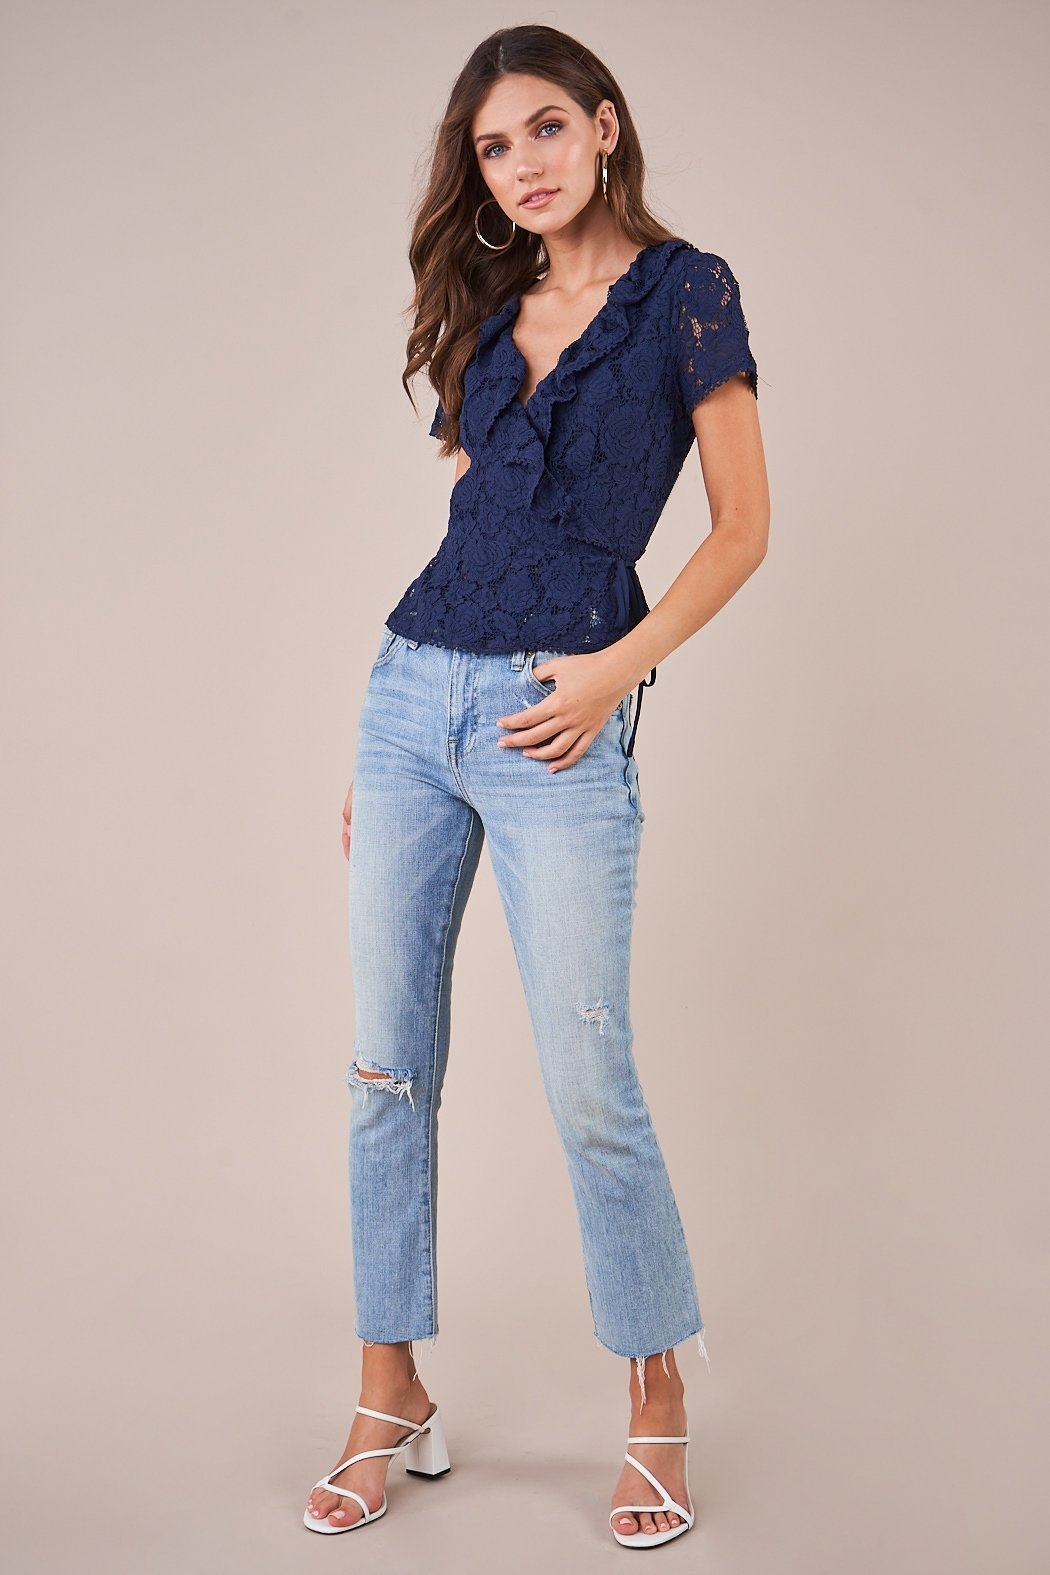 Sugarlips Chantilly Lace Wrap Top - Side Cropped Image